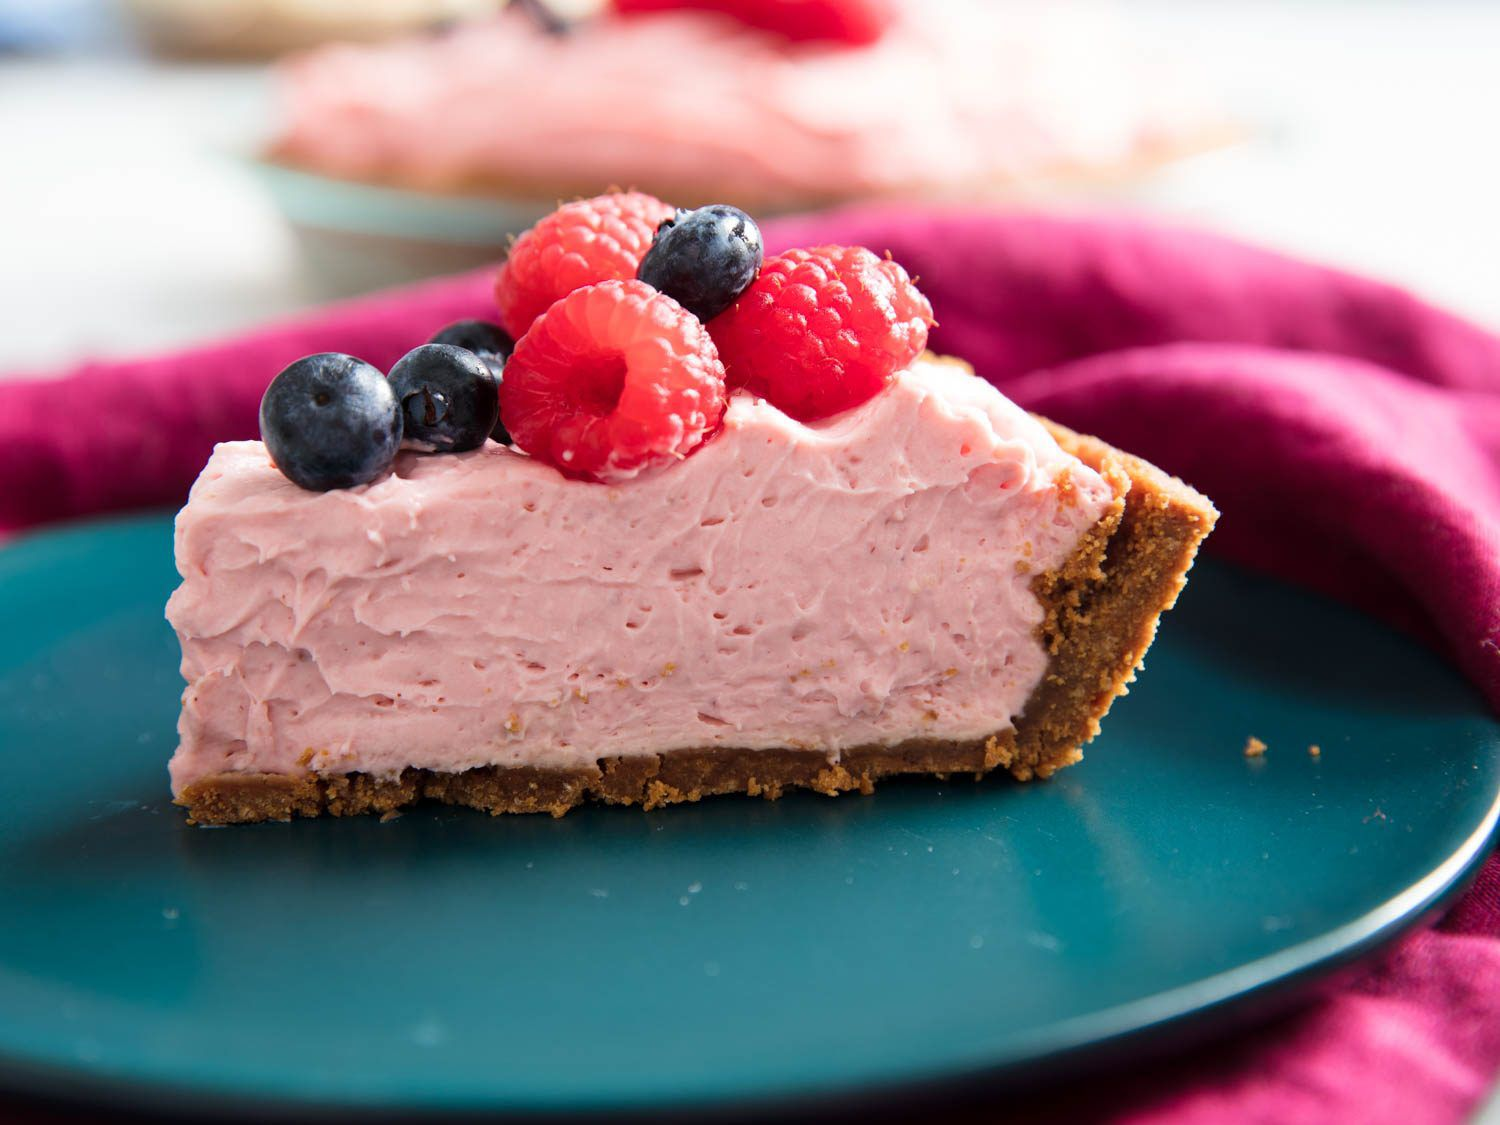 slice of cheesecake with raspberries and blueberries